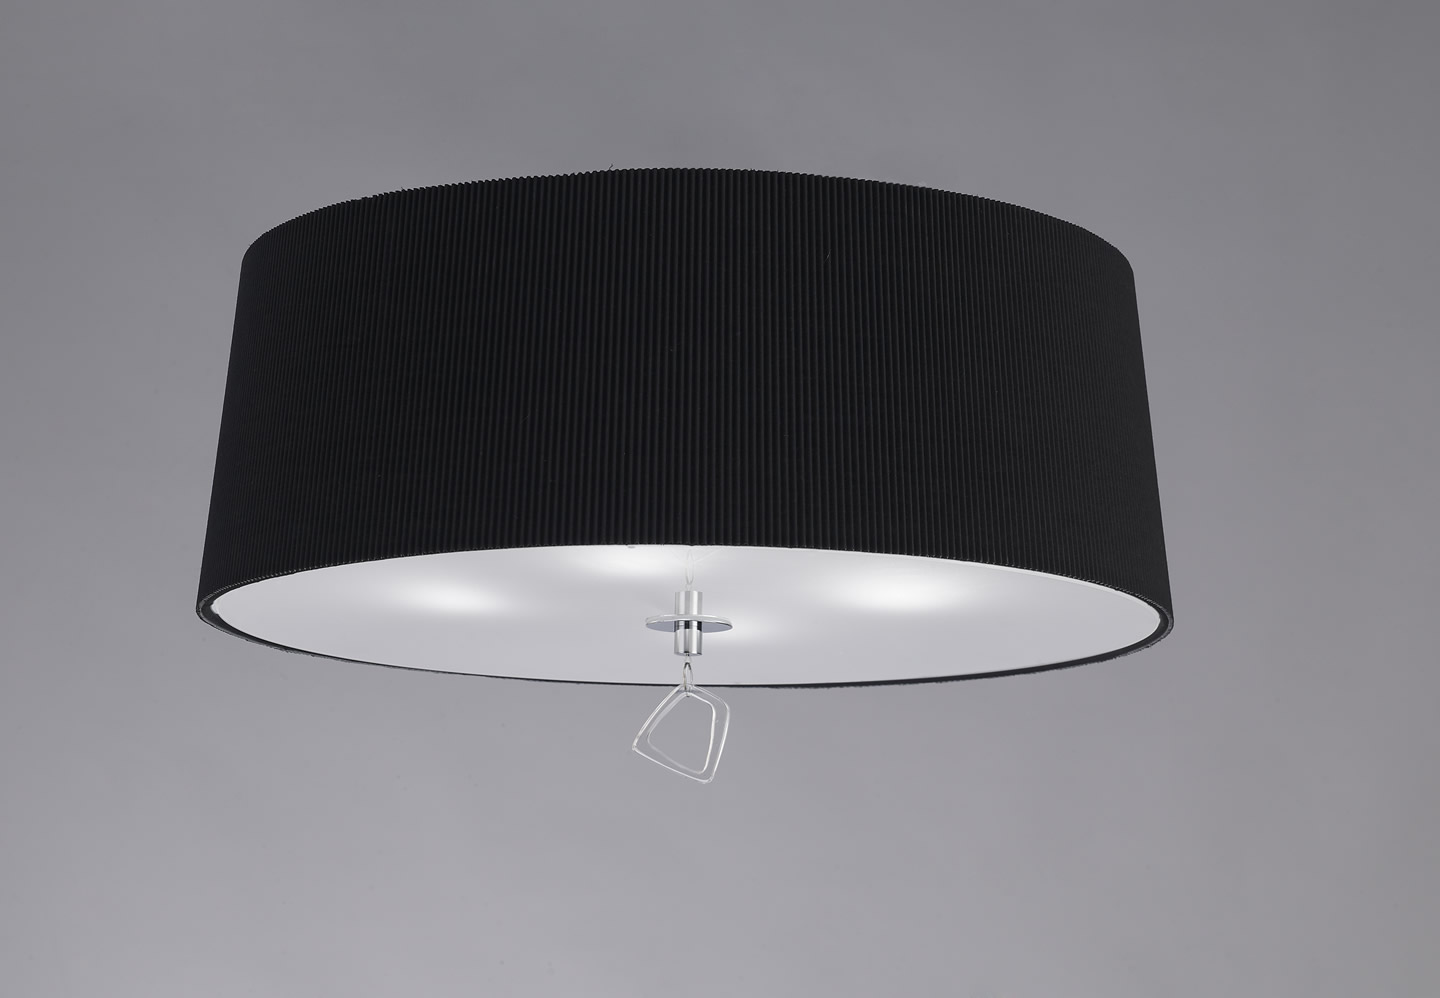 Mara ceiling lamp ø55cm 4xE27 20w Chrome/Black